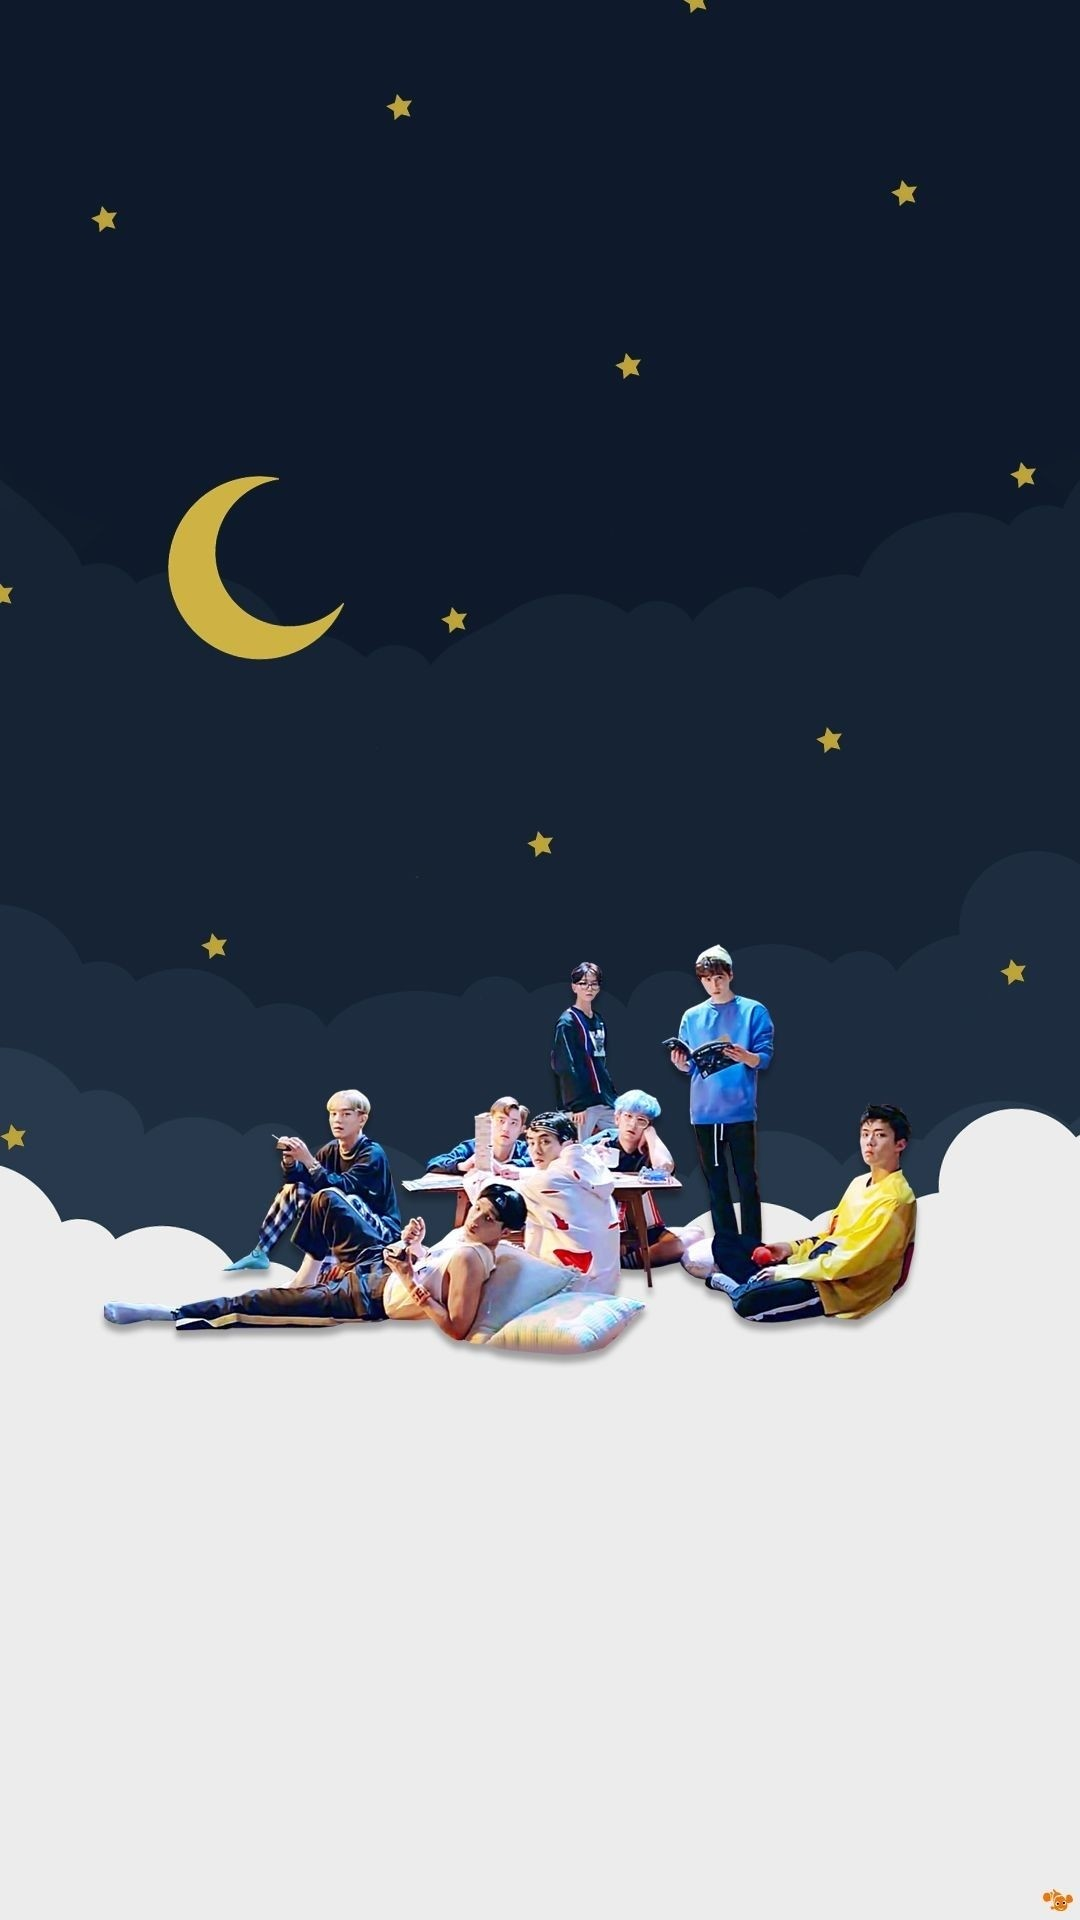 Exo wallpaper for iPhone